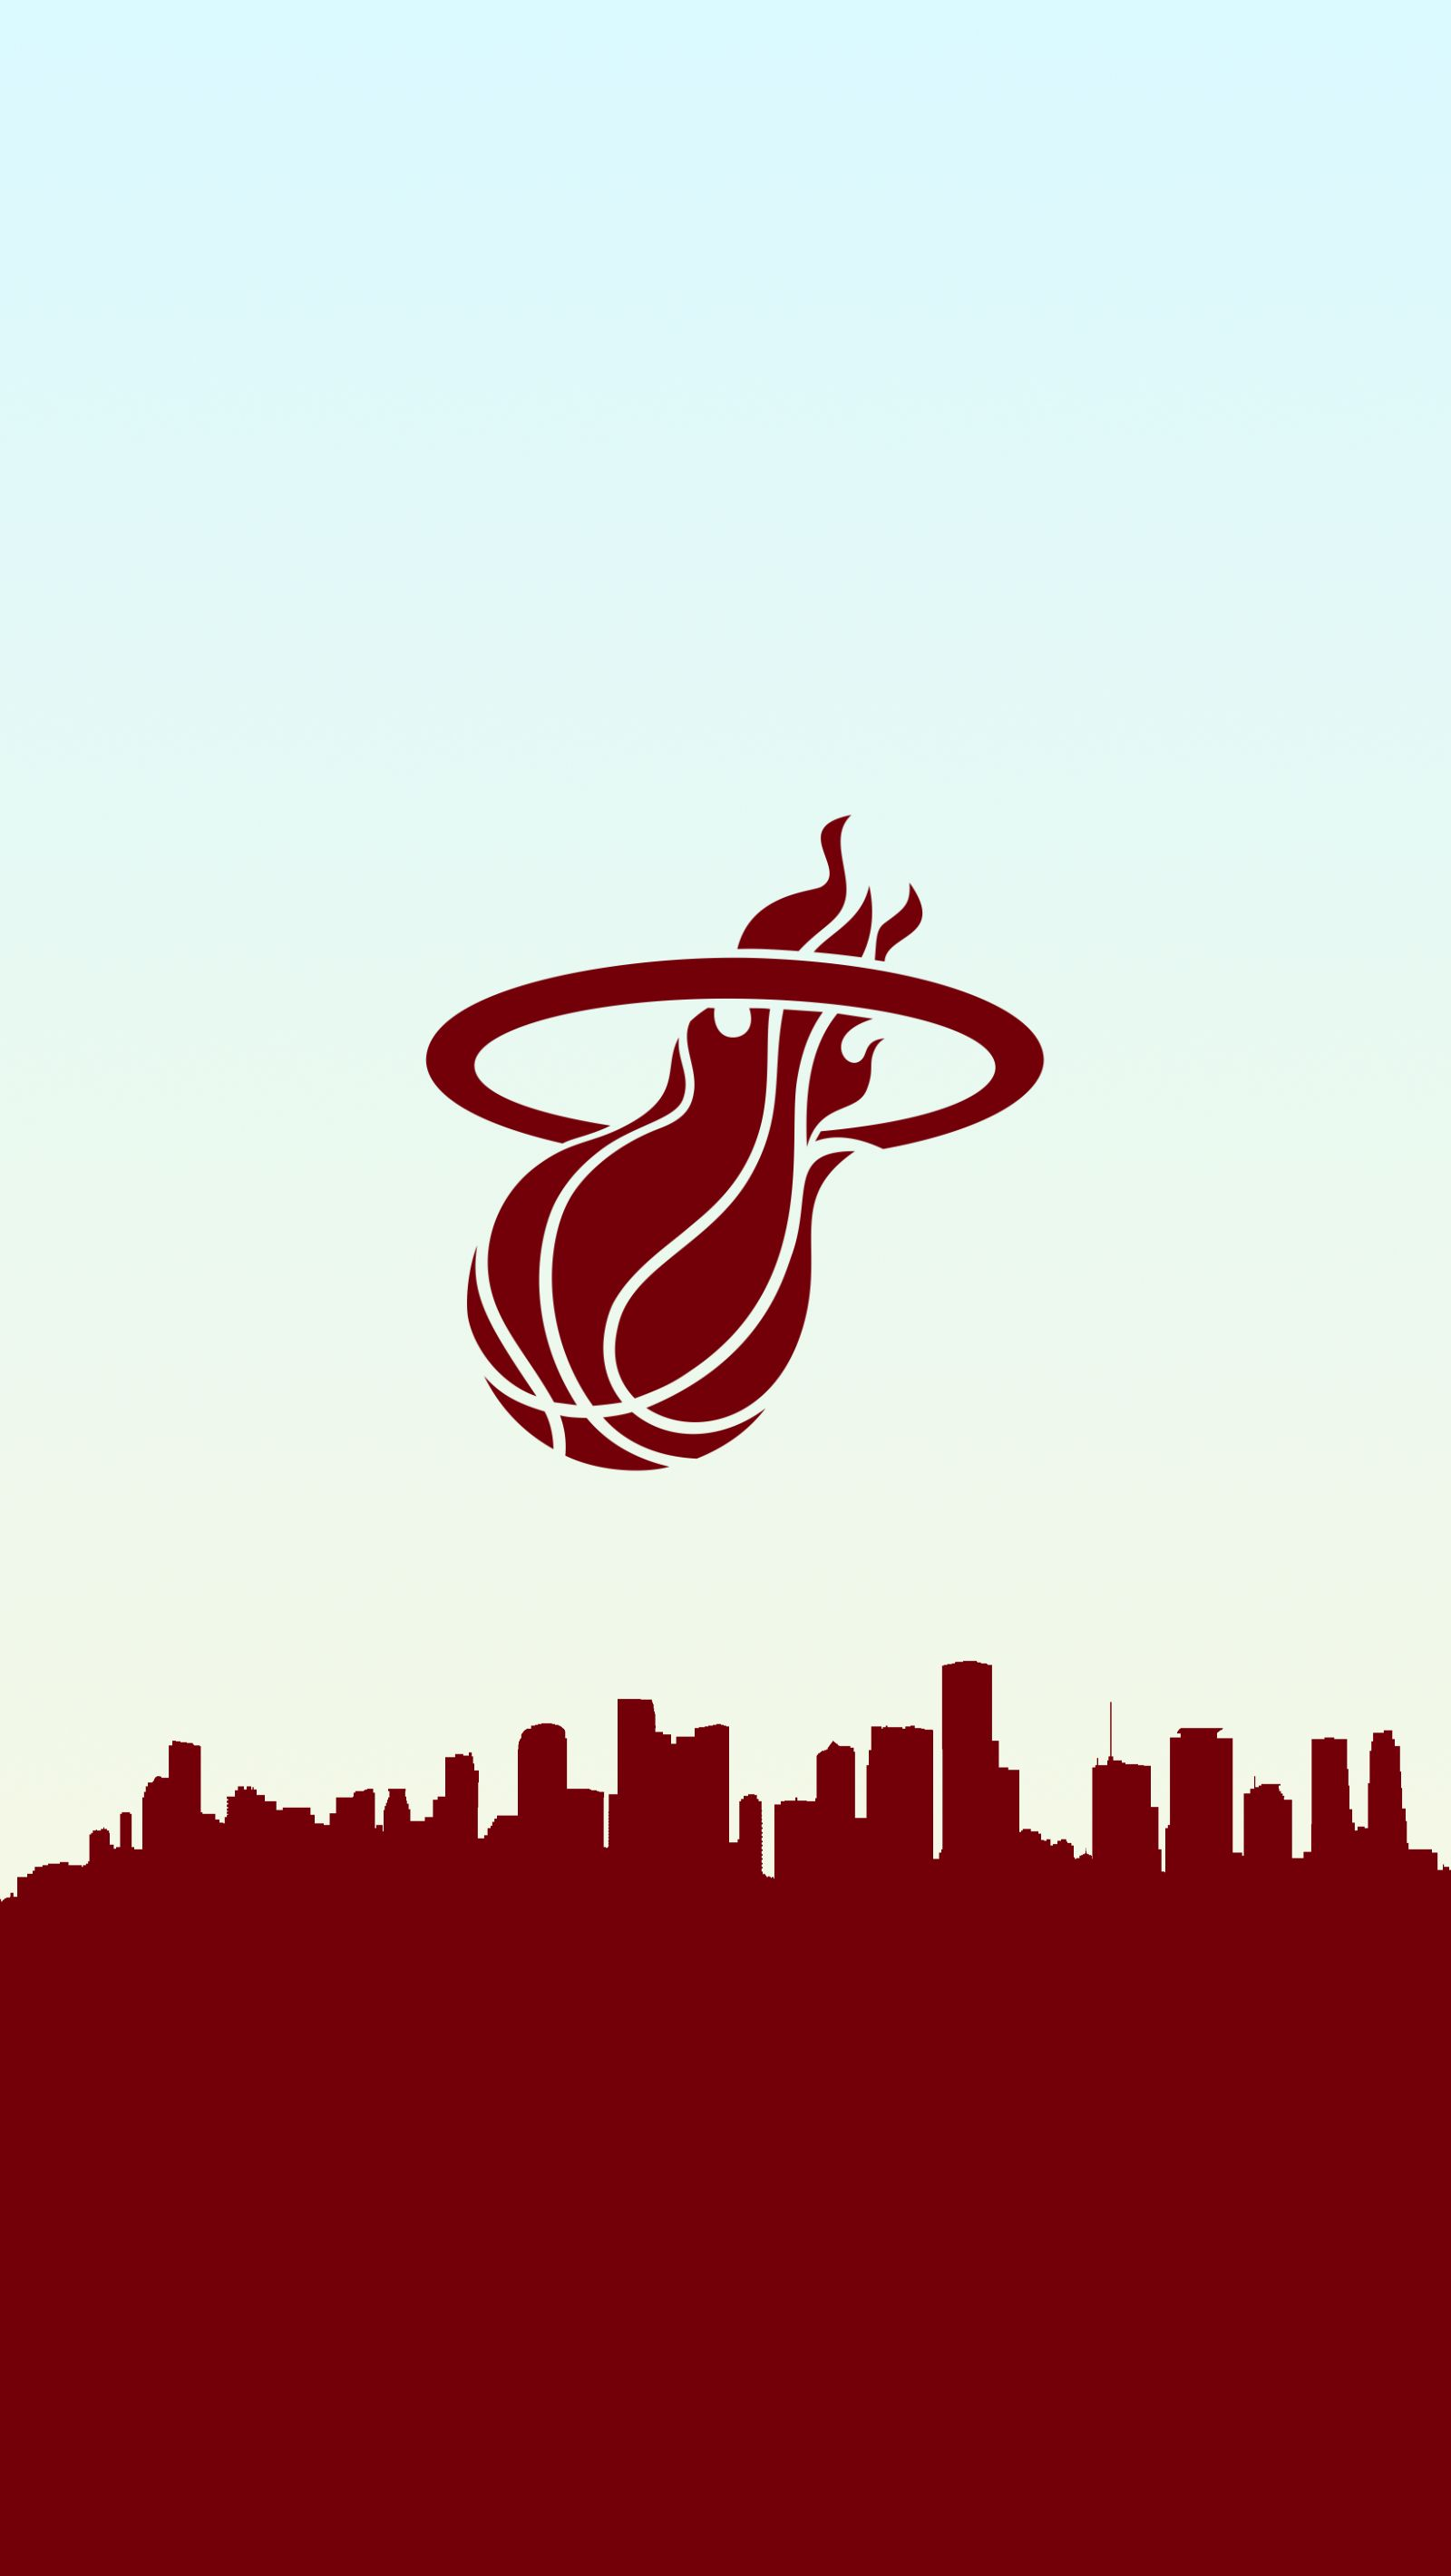 Miami Heat Basketball Phone Background In 2020 Miami Heat Basketball Basketball Wallpaper Miami Heat